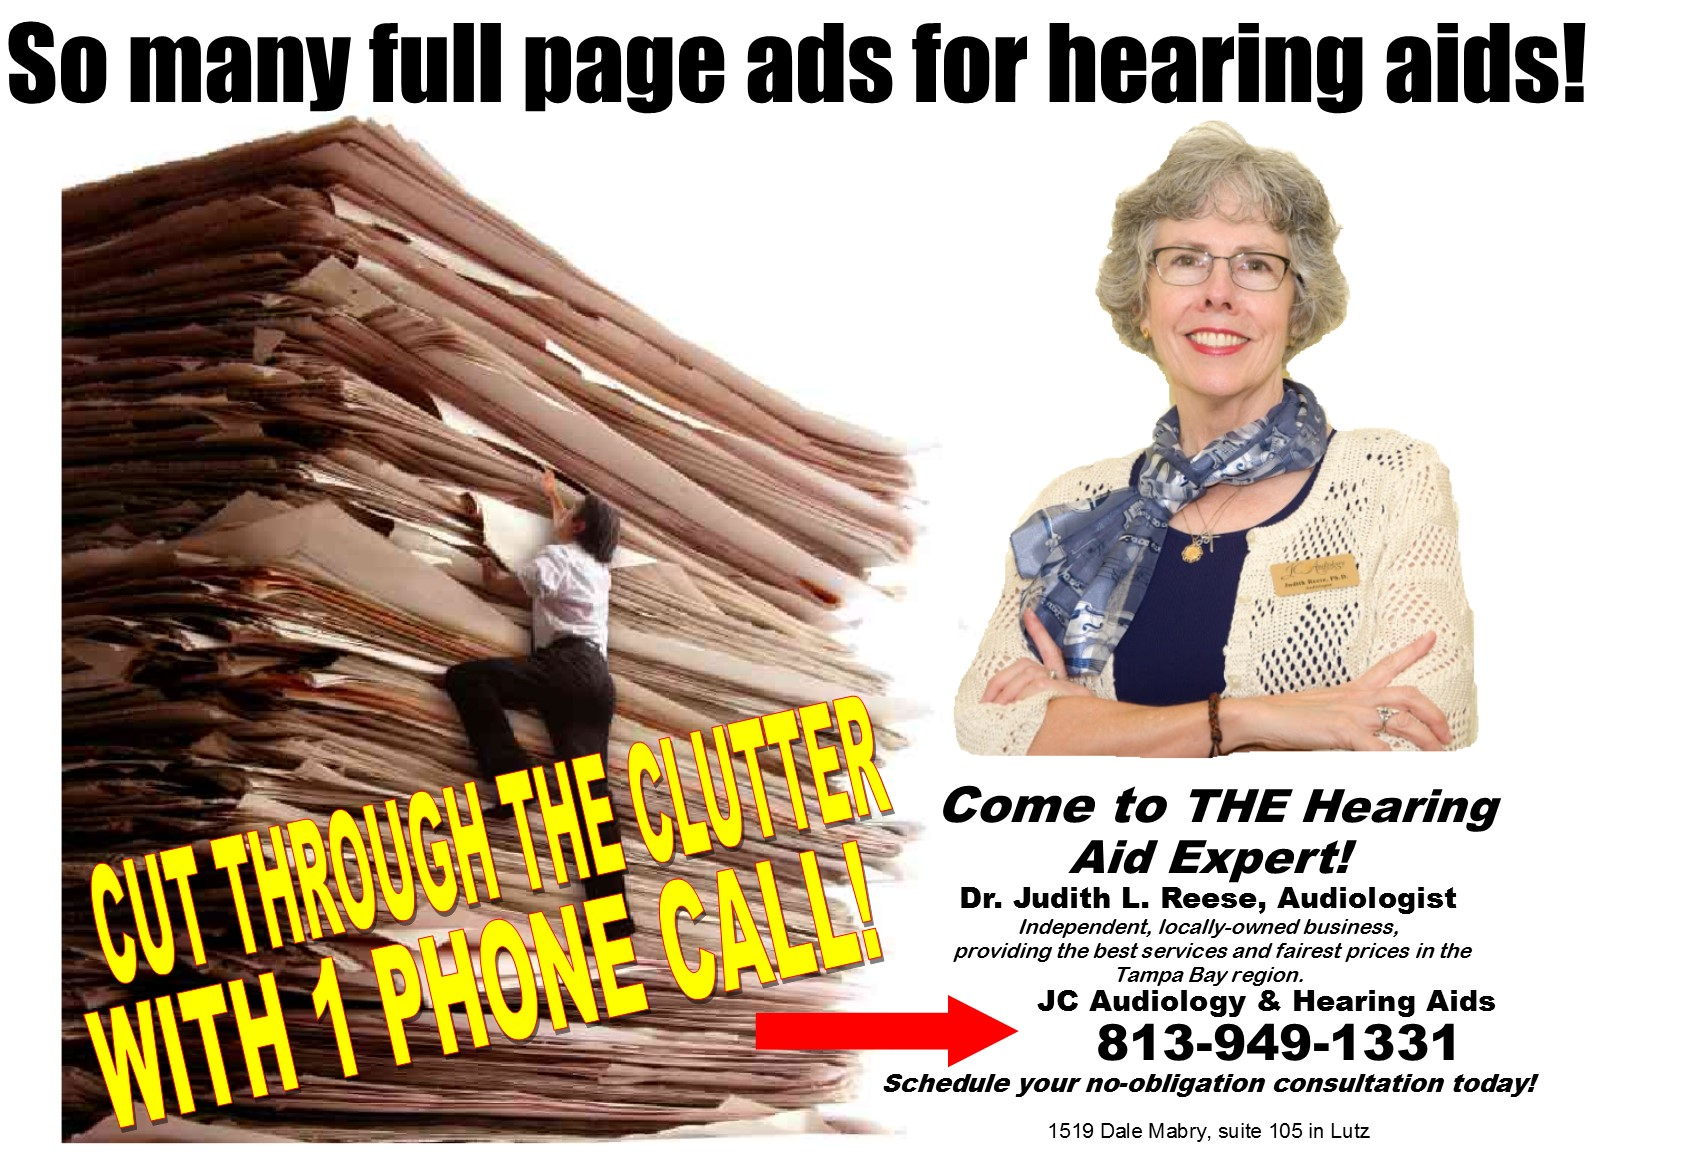 There are numerous full page ads and mailed pieces about hearing aid deals.  The promises and pricing of these ads can be confusing.  Don't hesitate to call or come by and we'll be happy to give you the straight story on hearing aids!